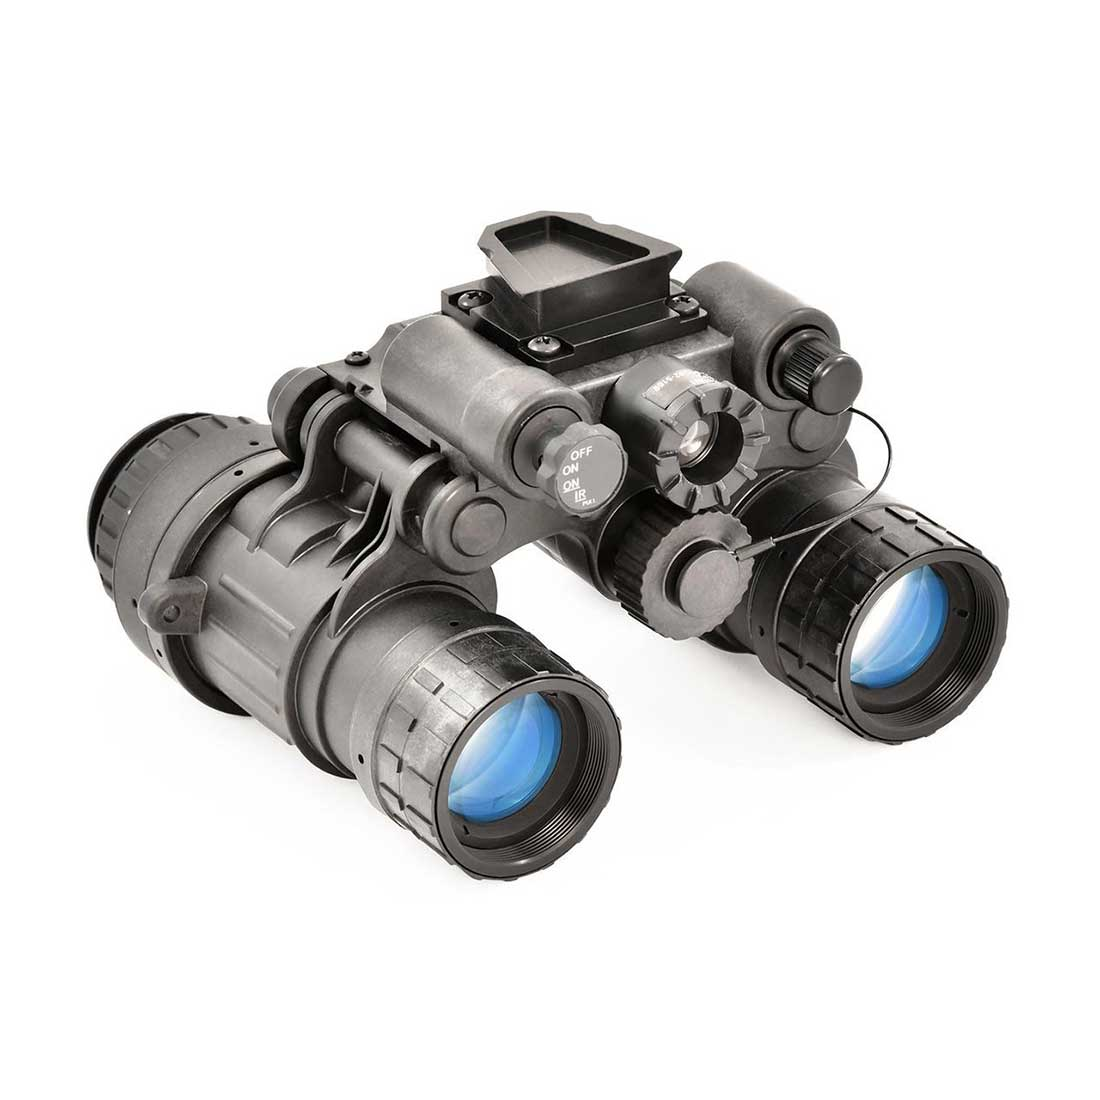 Night vision Binocular - Dual Gain